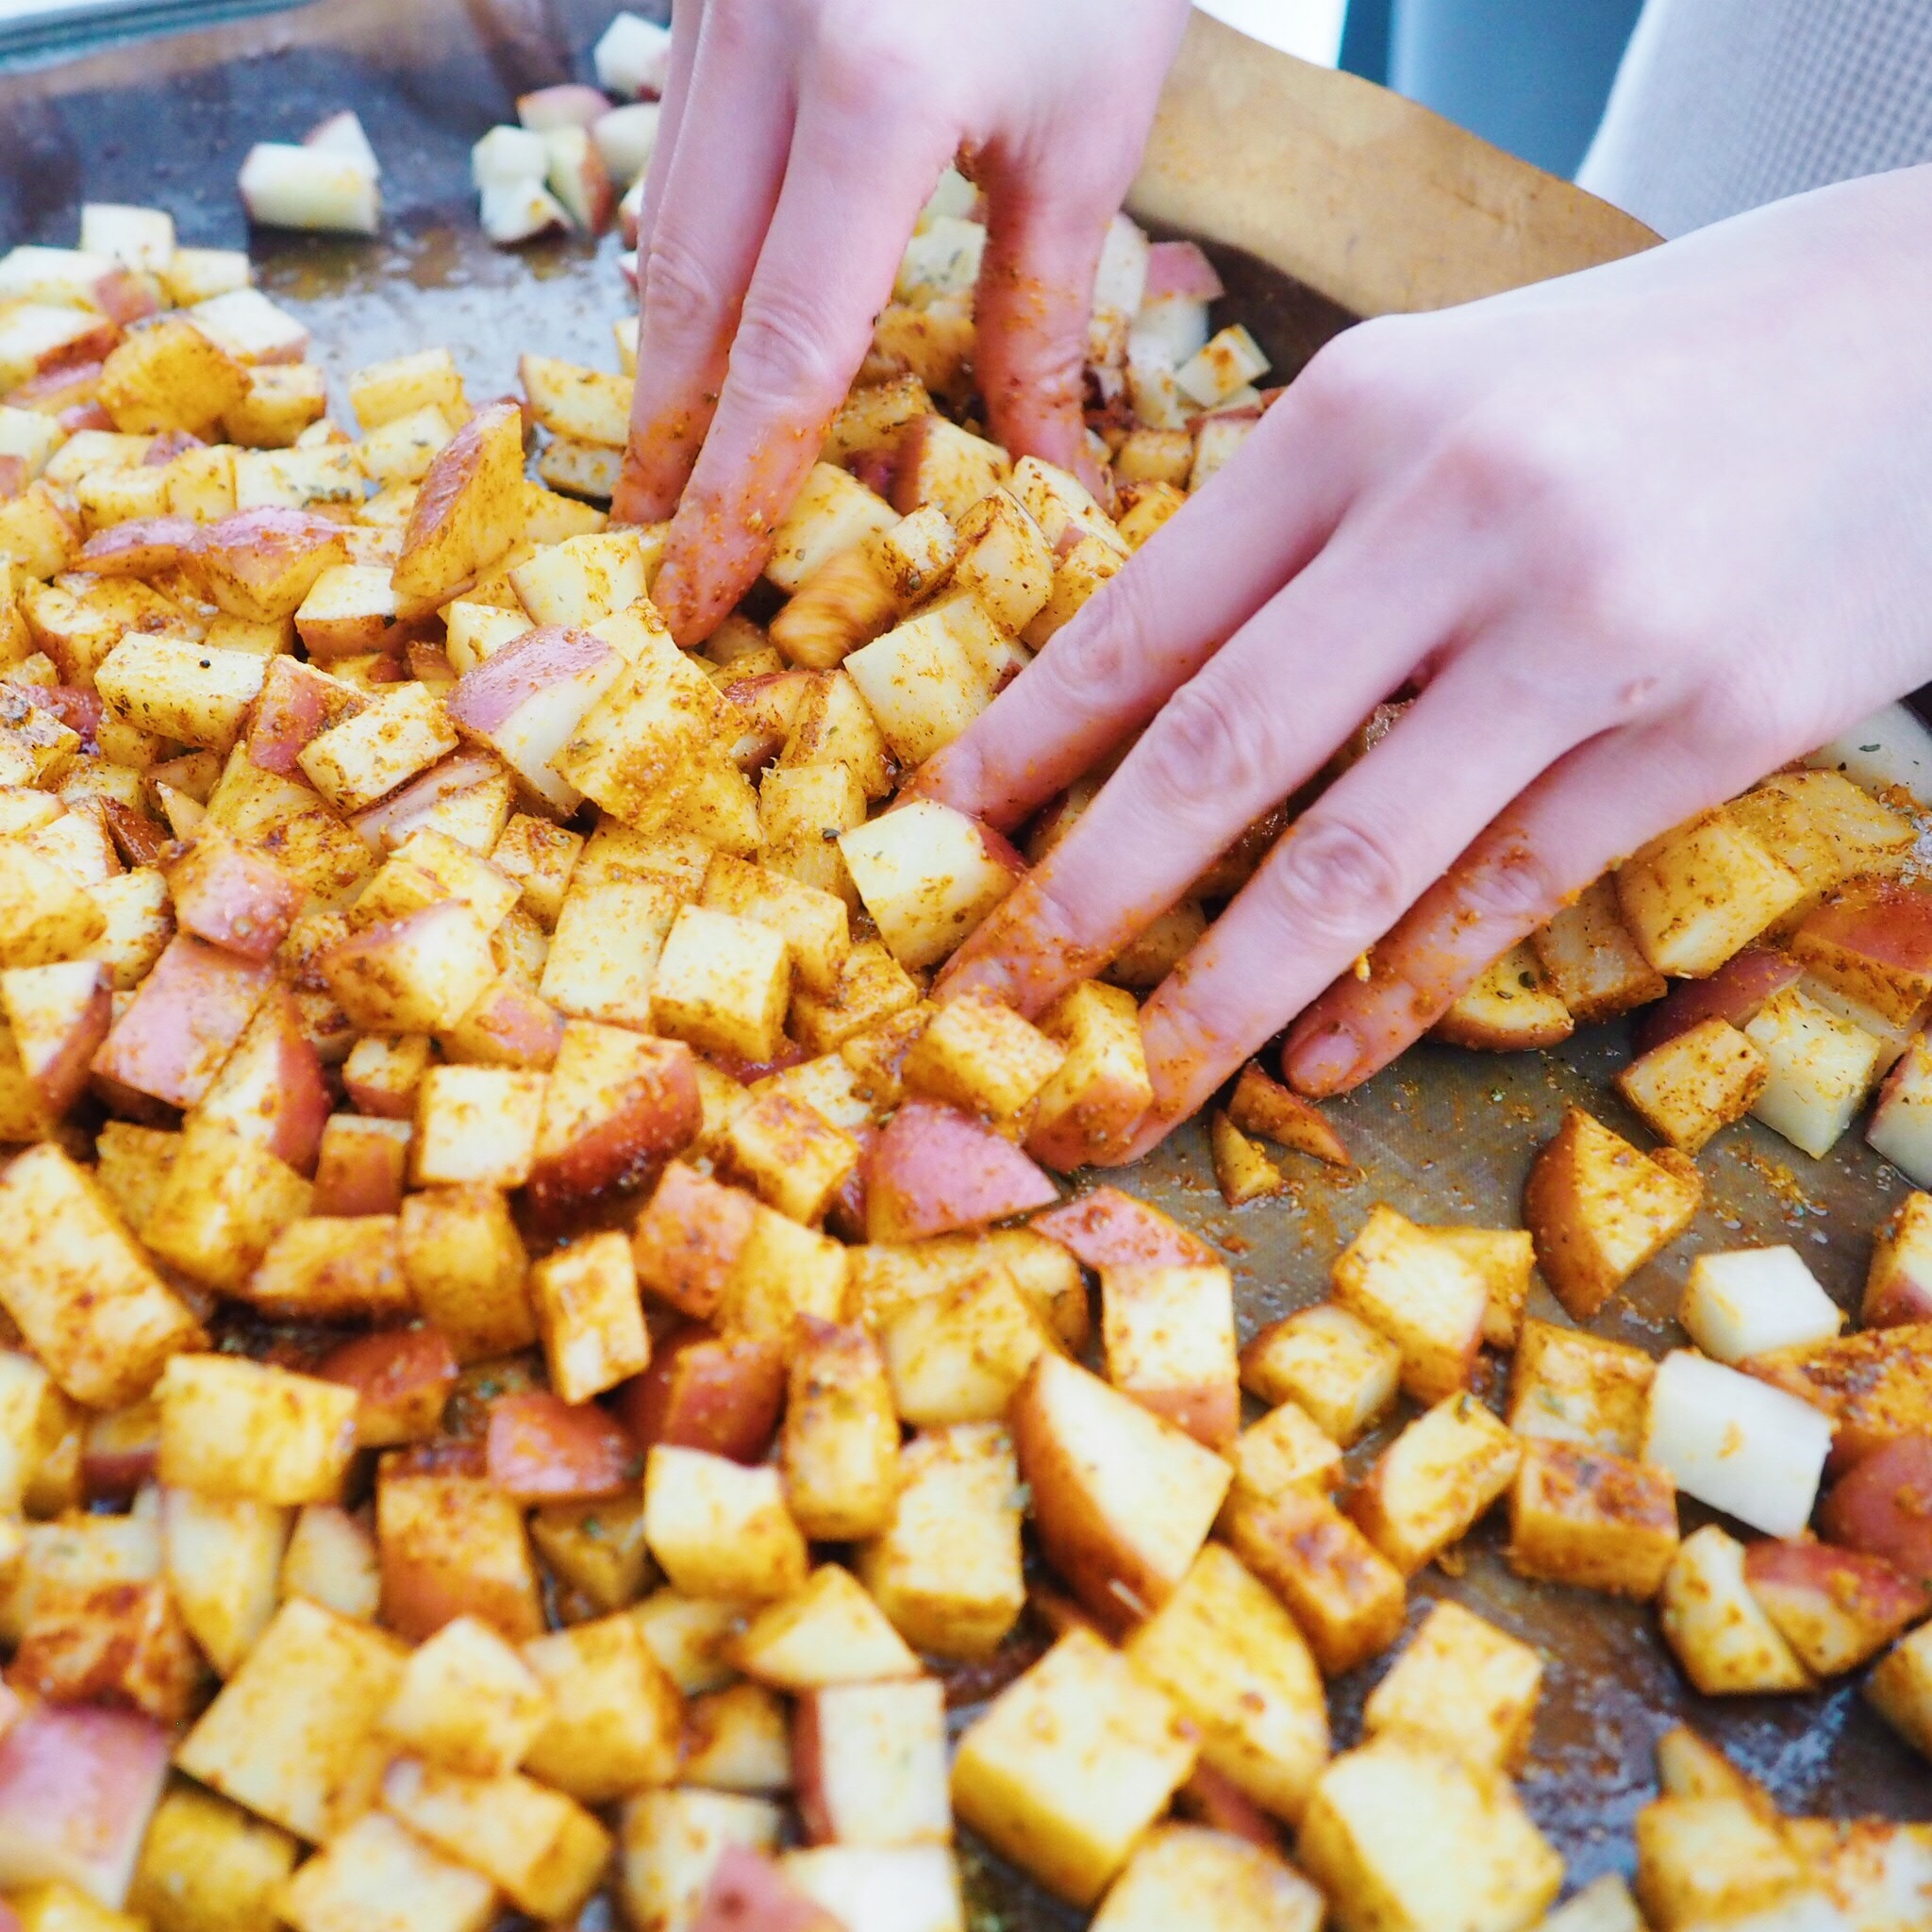 massage spices and oils into potatoes